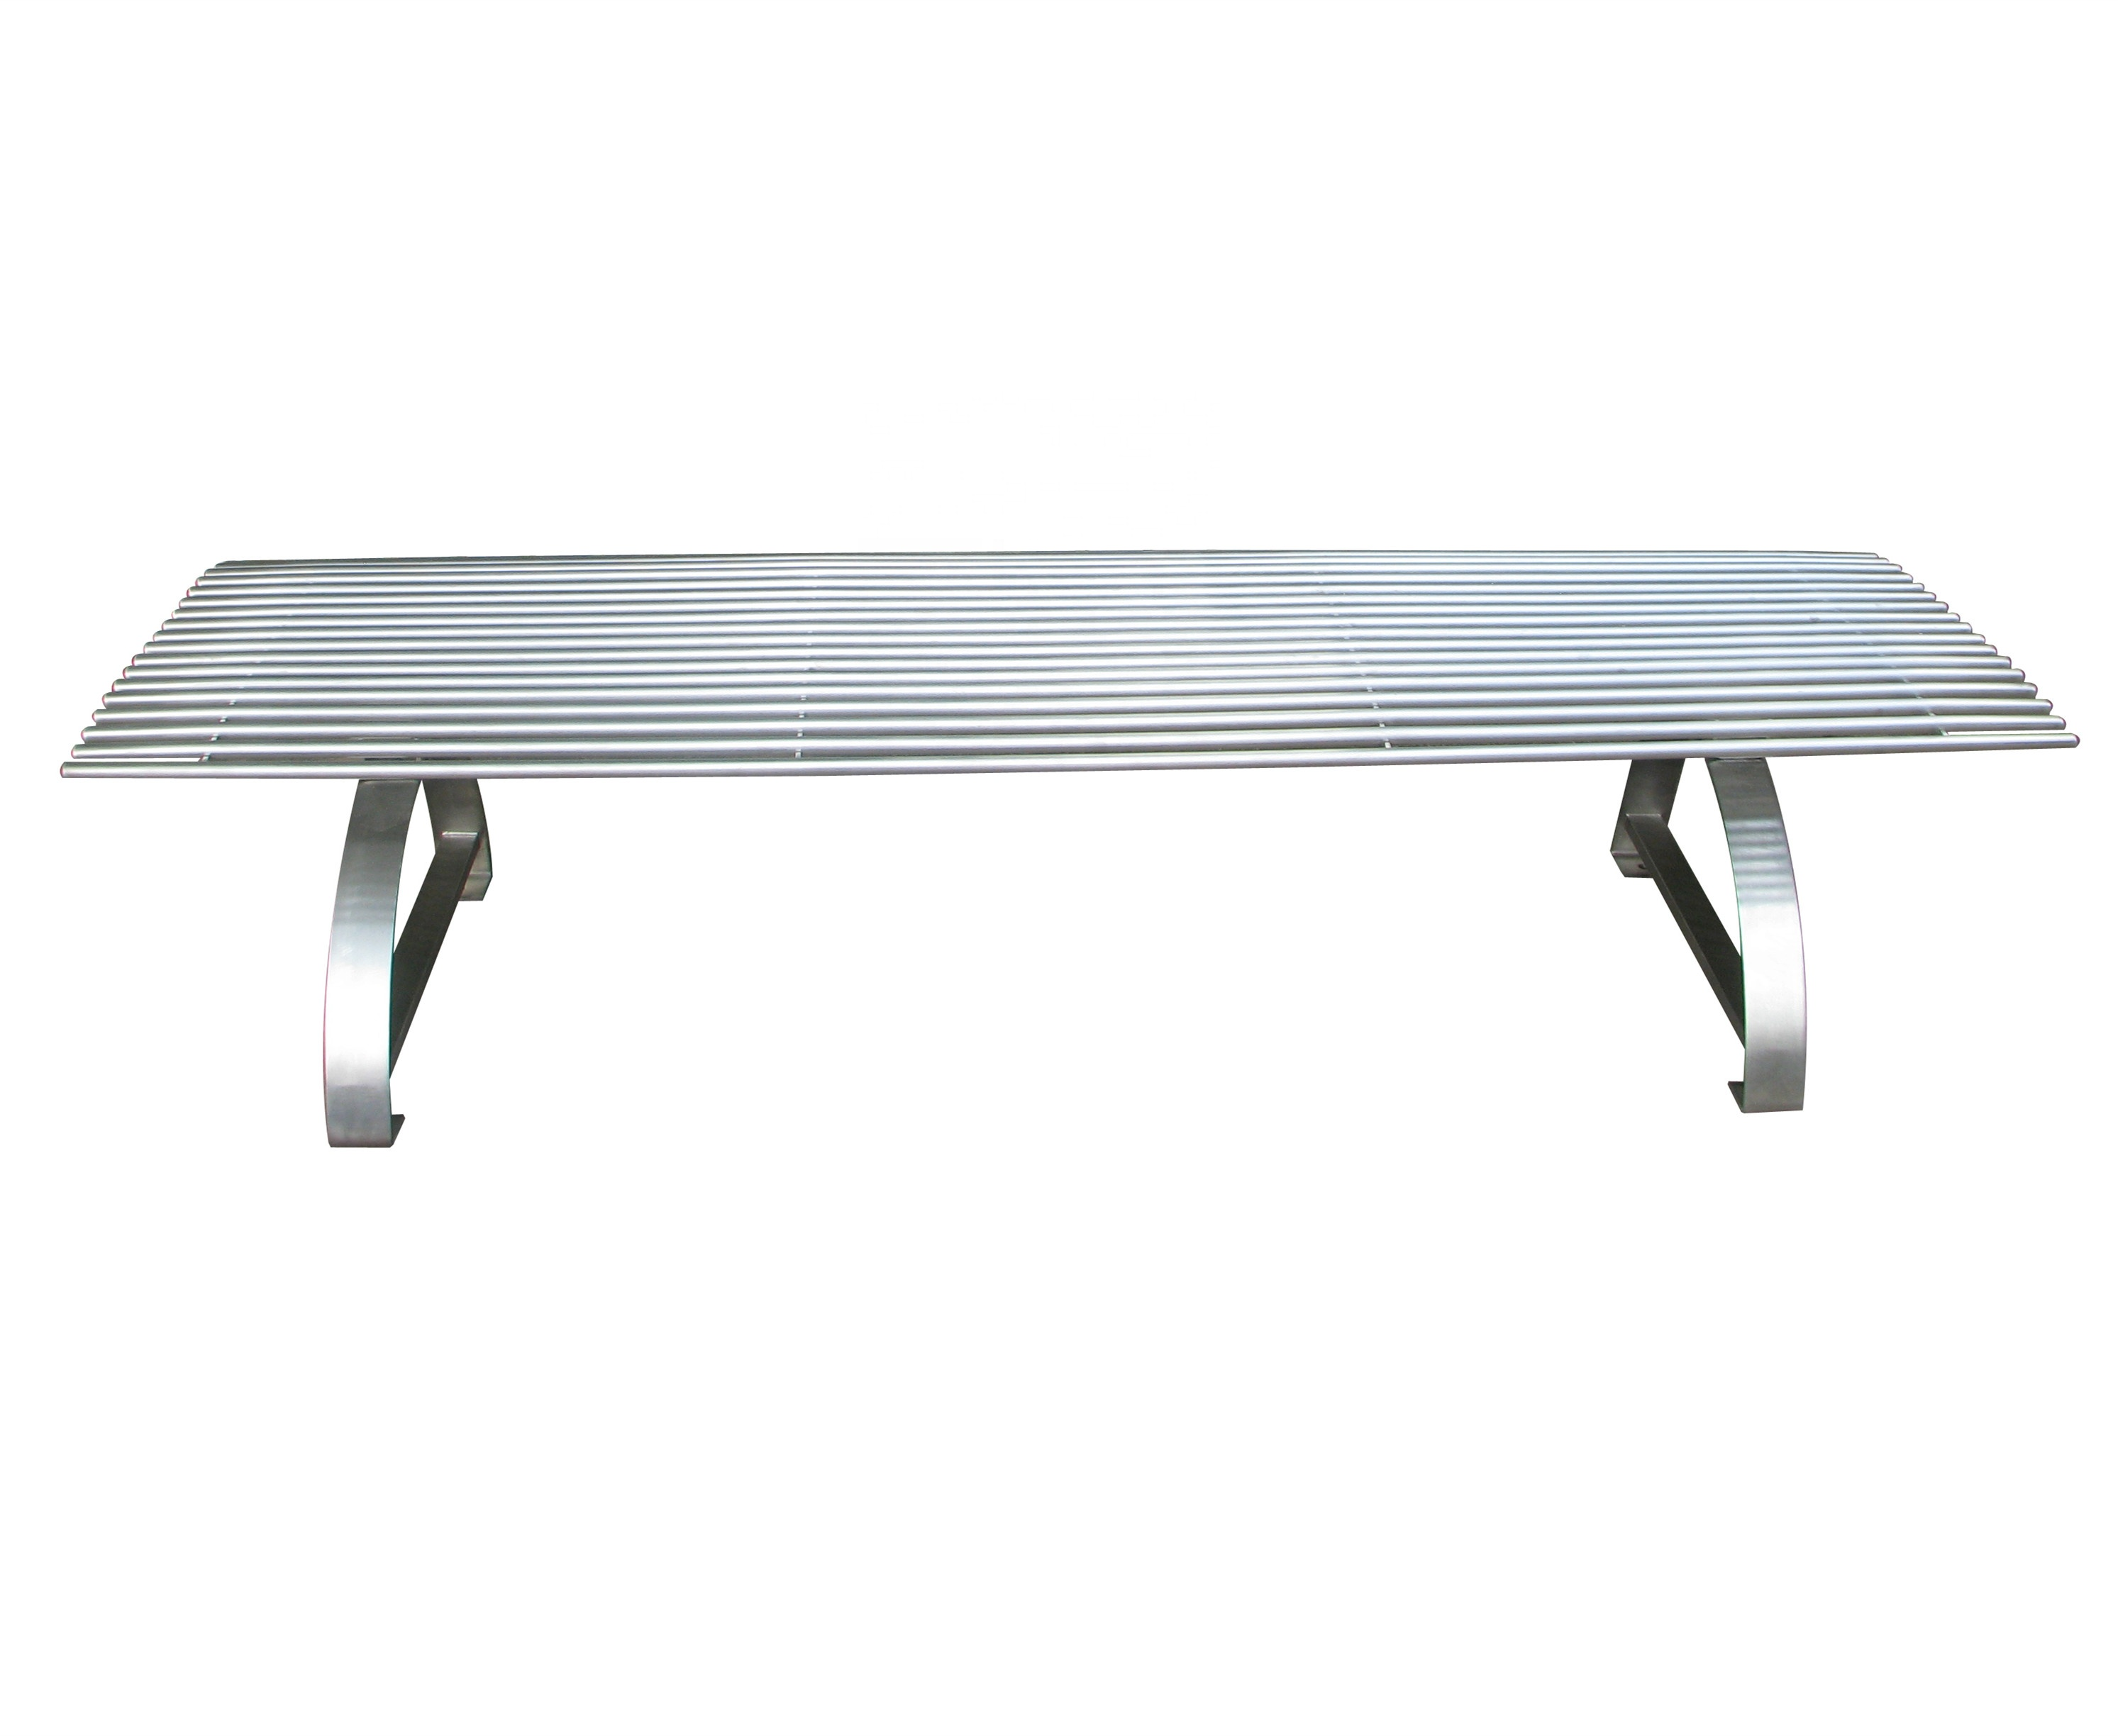 Outstanding Modern Stainless Steel Park Bench Without Backrest Buy Stainless Steel Park Bench Stainless Steel Park Bench Without Backrest Modern Park Bench Pabps2019 Chair Design Images Pabps2019Com